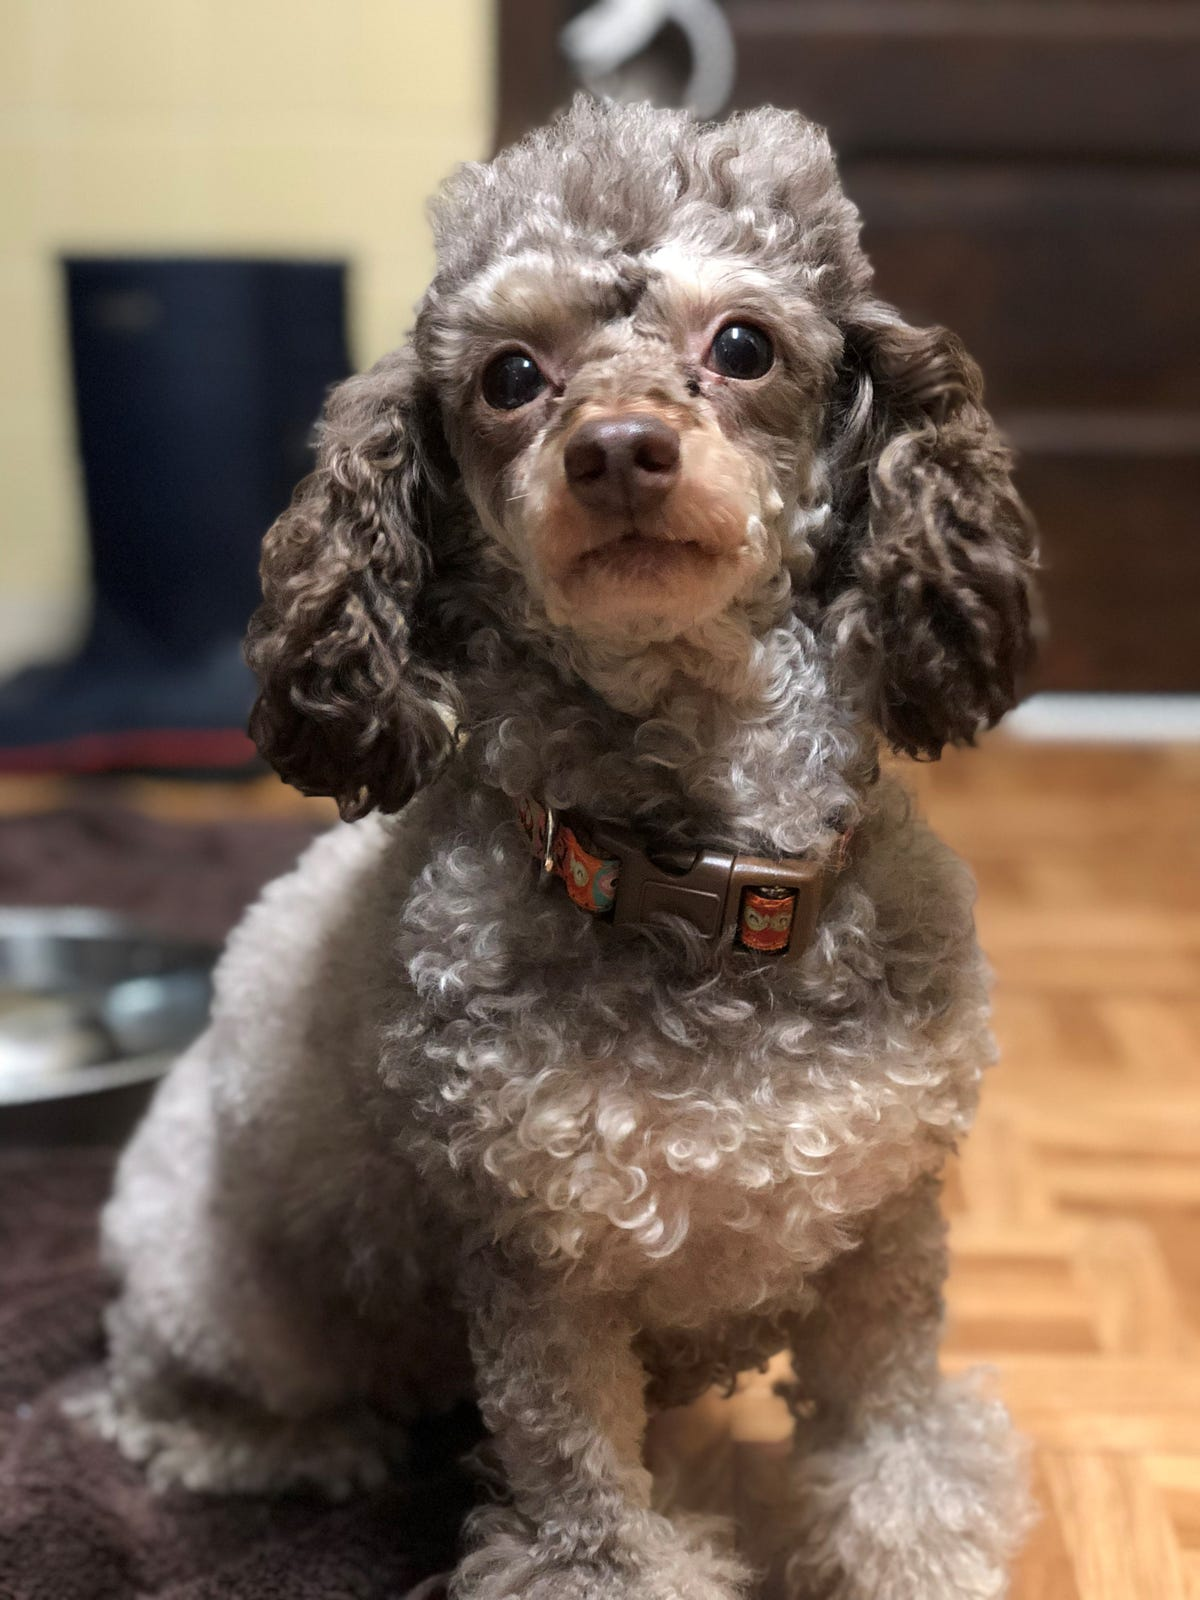 Doggy psychics called after poodle rescued from puppy mill